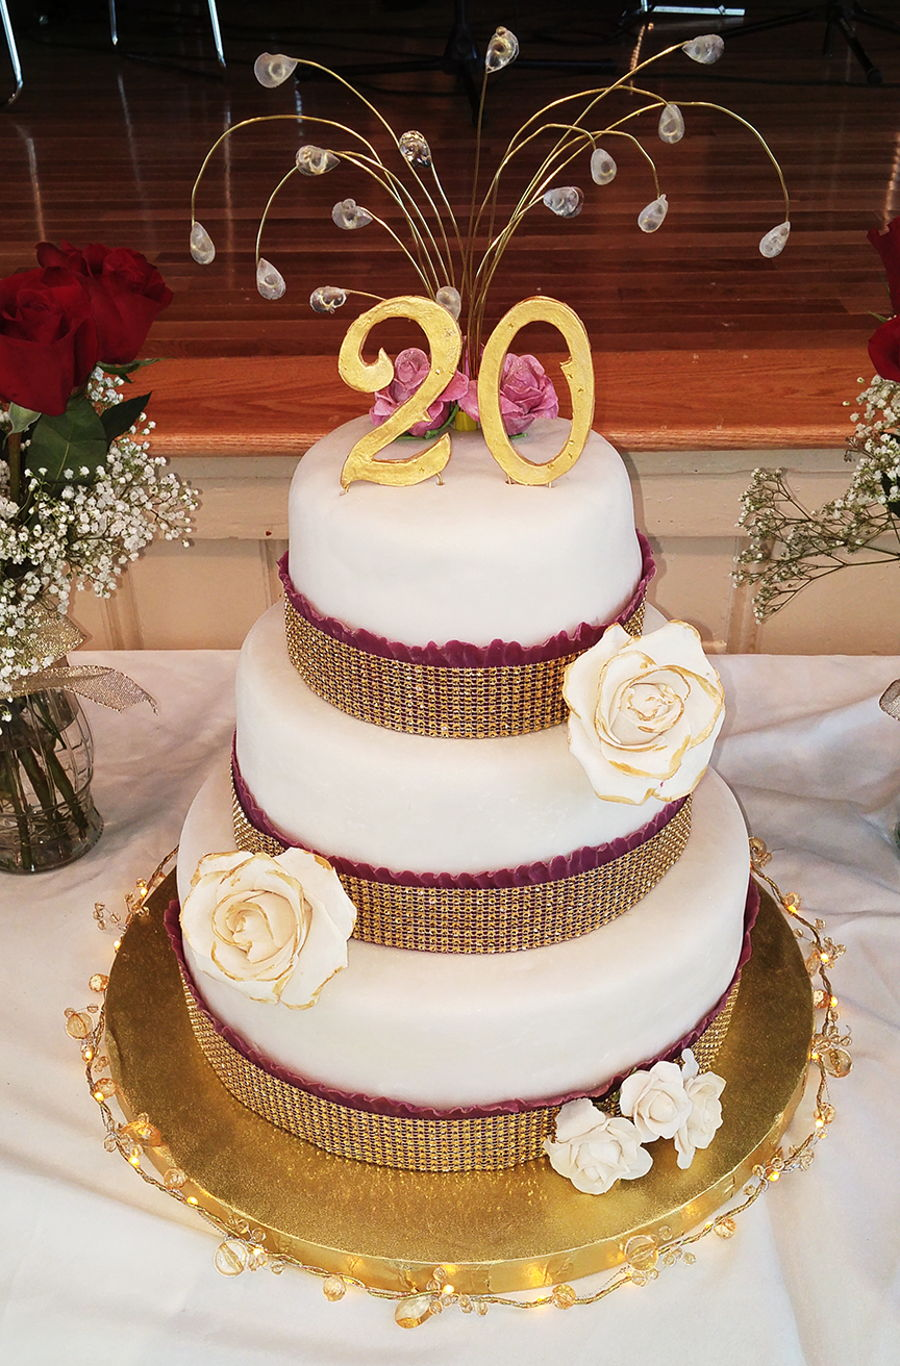 20Th Wedding Anniversary Cake - CakeCentral.com